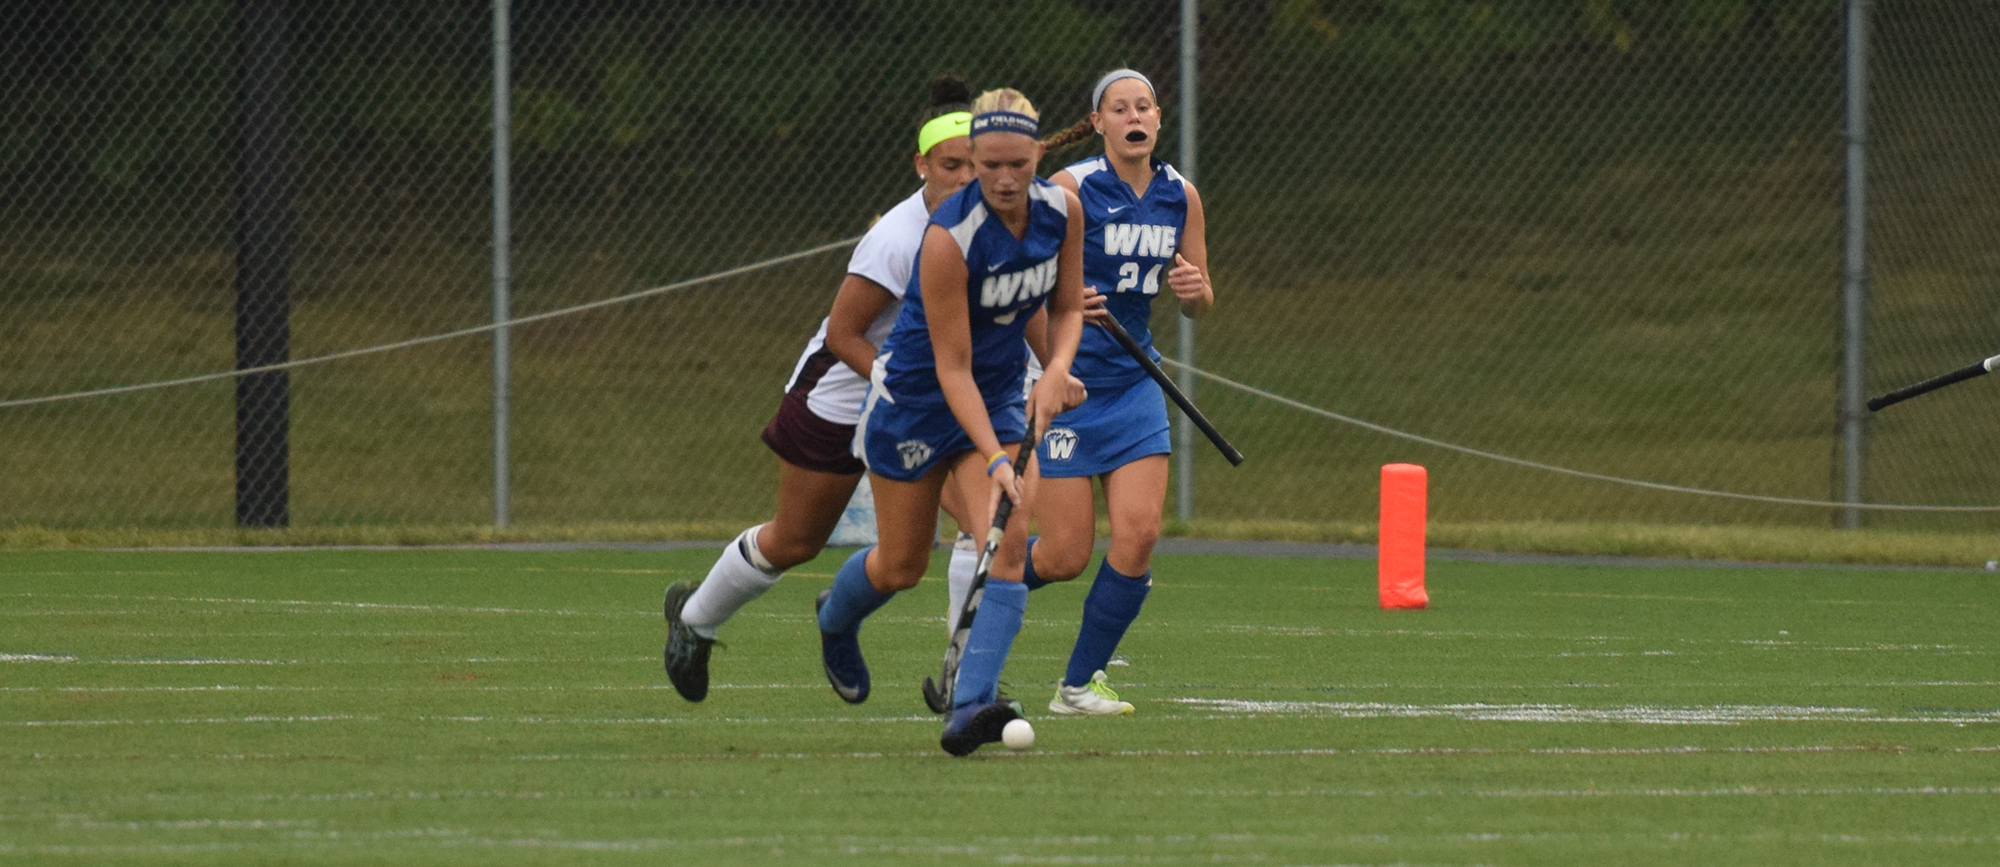 Senior Michelle Carlson scored Western New England's lone goal late in the first half of Wednesday's 2-1 loss to Springfield.